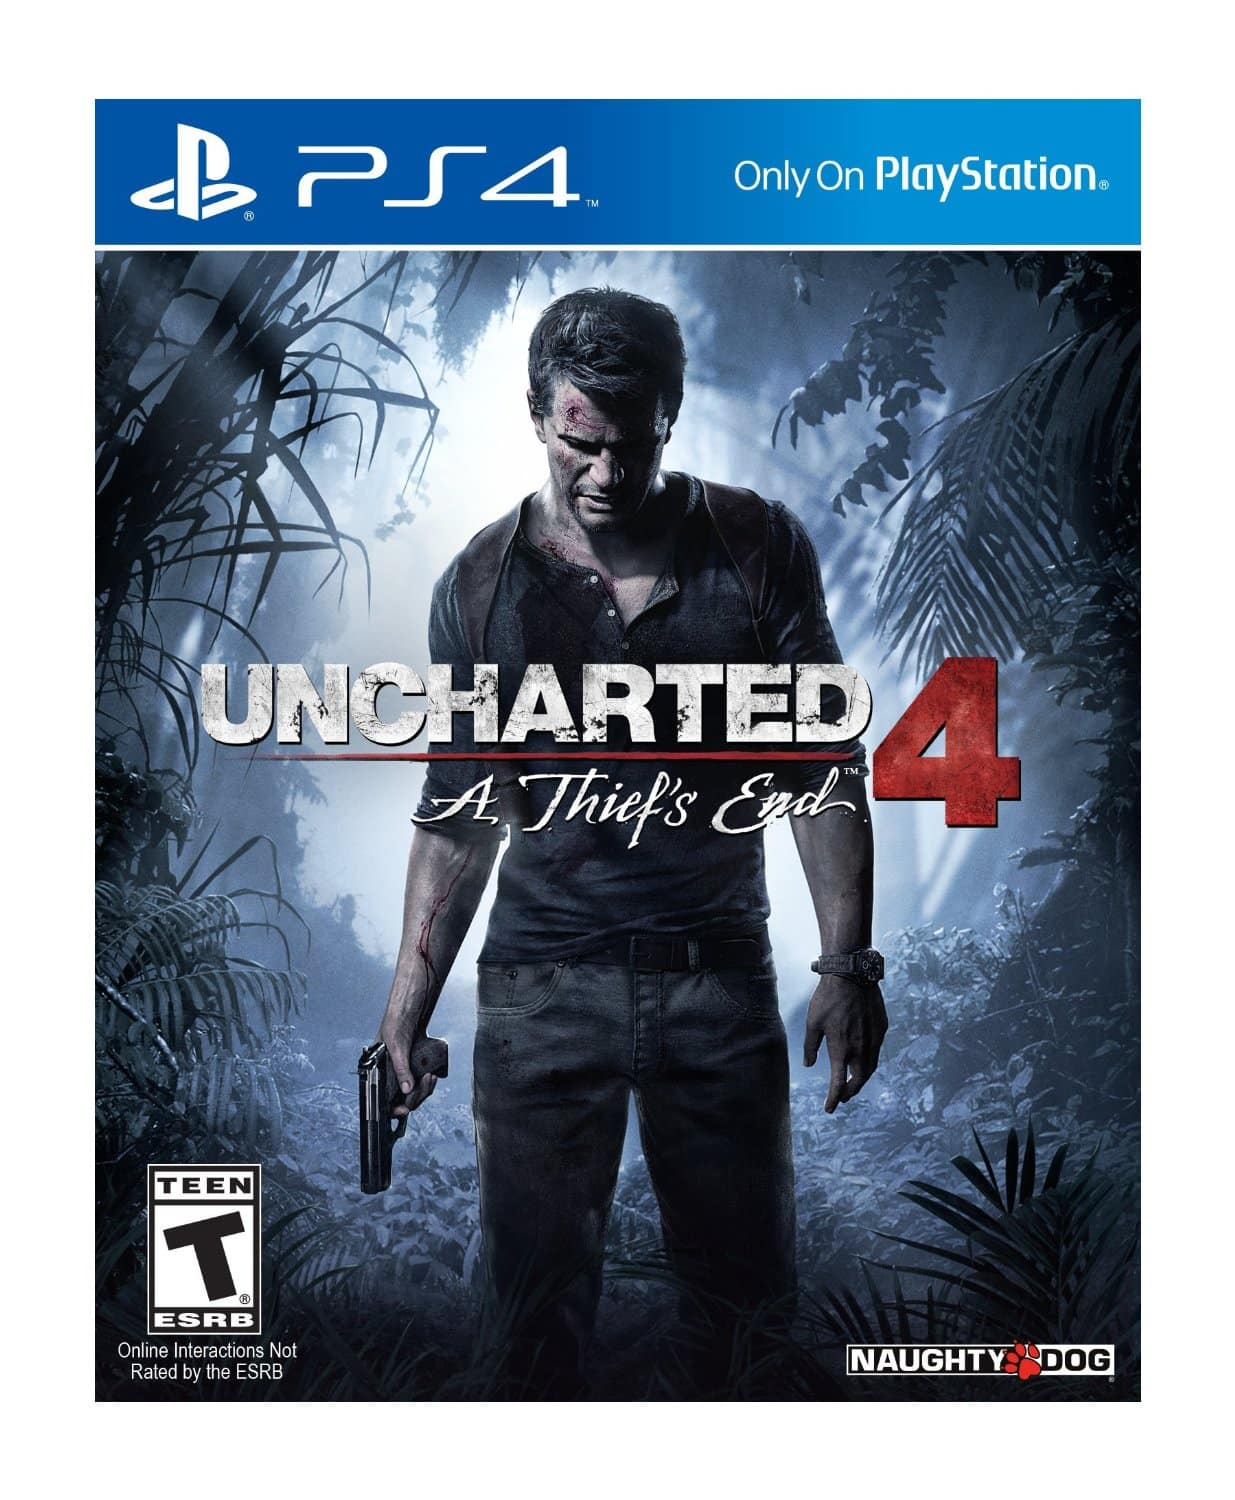 (Pre-Order) Uncharted 4: A Thief's End (PlayStation 4) for $50 + Free Shipping! (eBay Daily Deal)